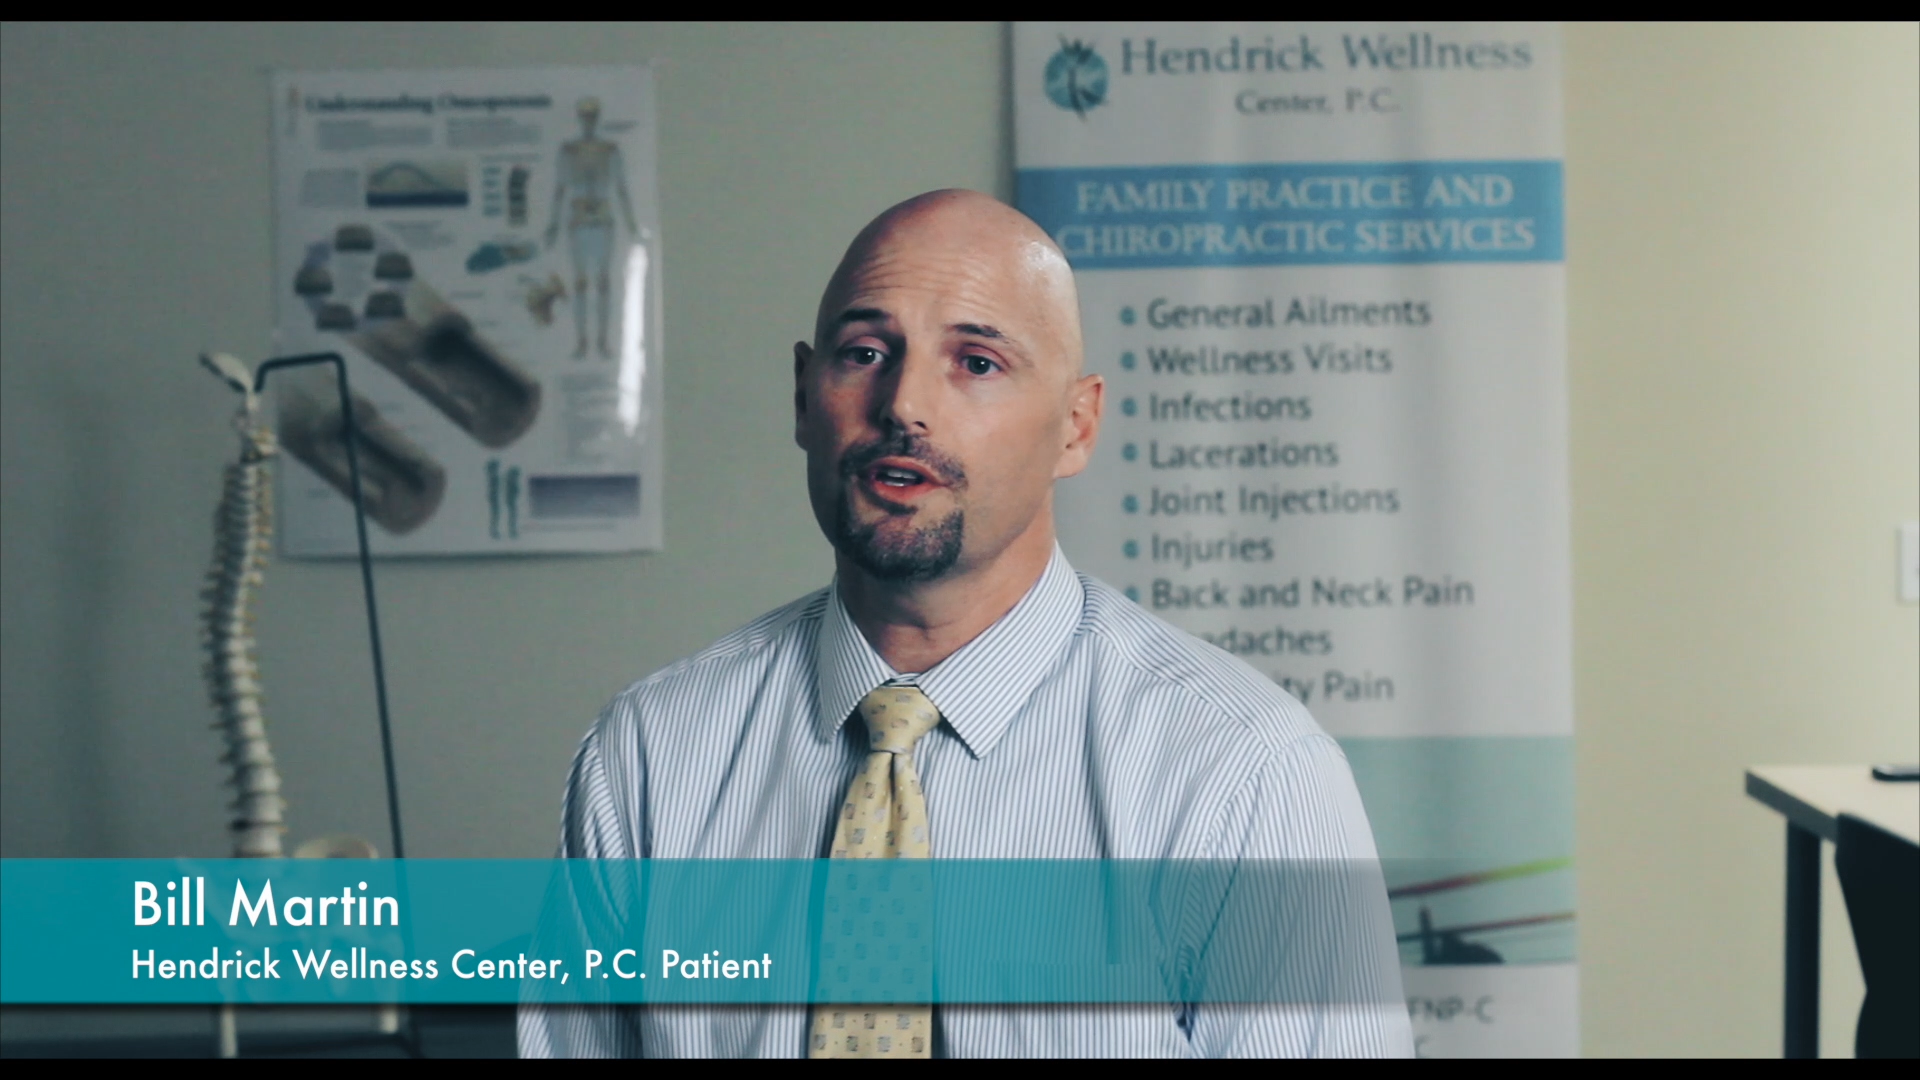 Hendrick Wellness Center, P.C. _ Testimonial _ Bill Martin (1)